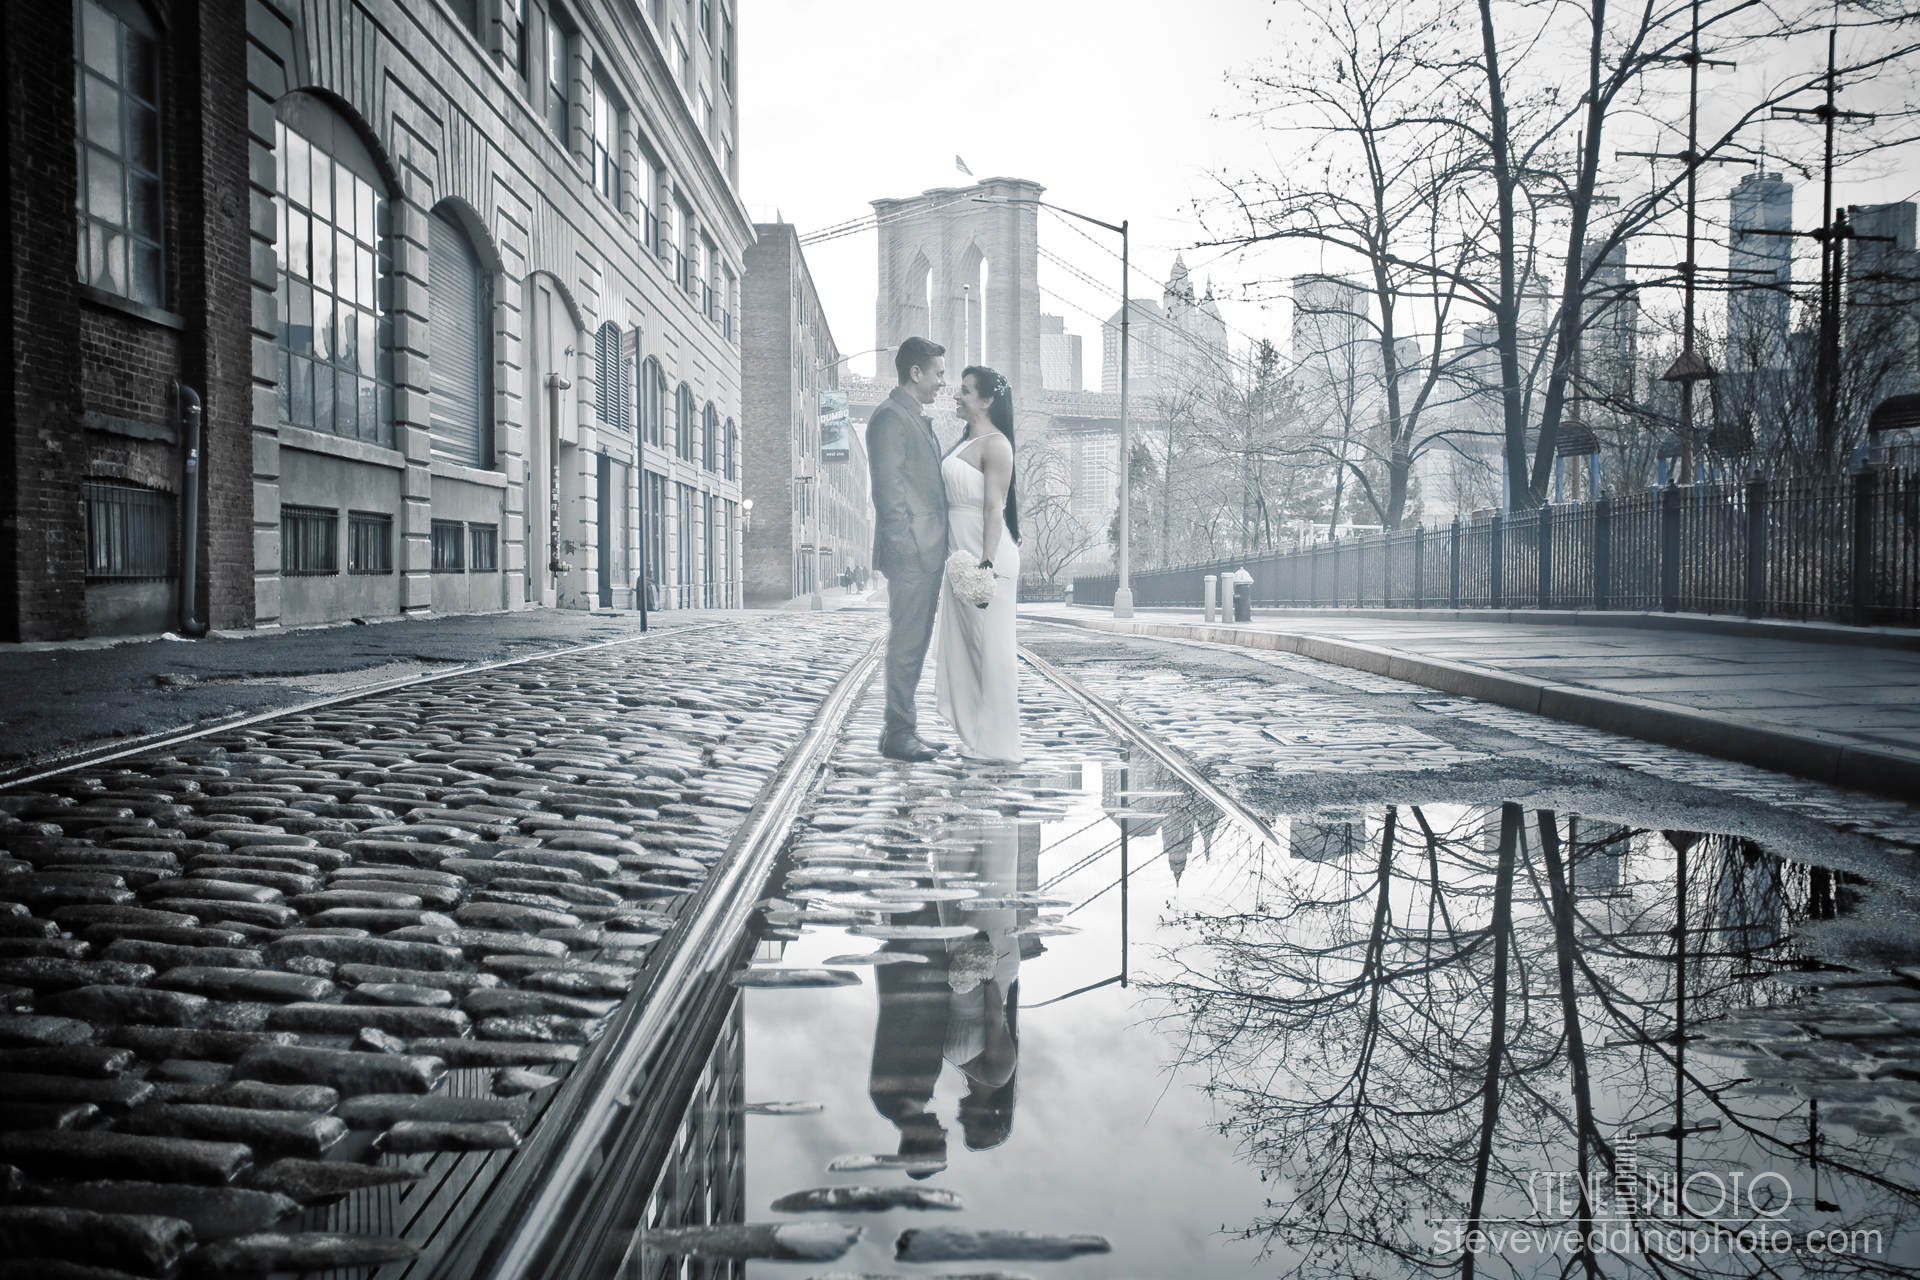 New York City Elopement. New York City, Dumbo Brooklyn, Brooklyn Bridge Park, Wedding Photo, Elopement Photo. steveweddingphoto.com -_MG_4456